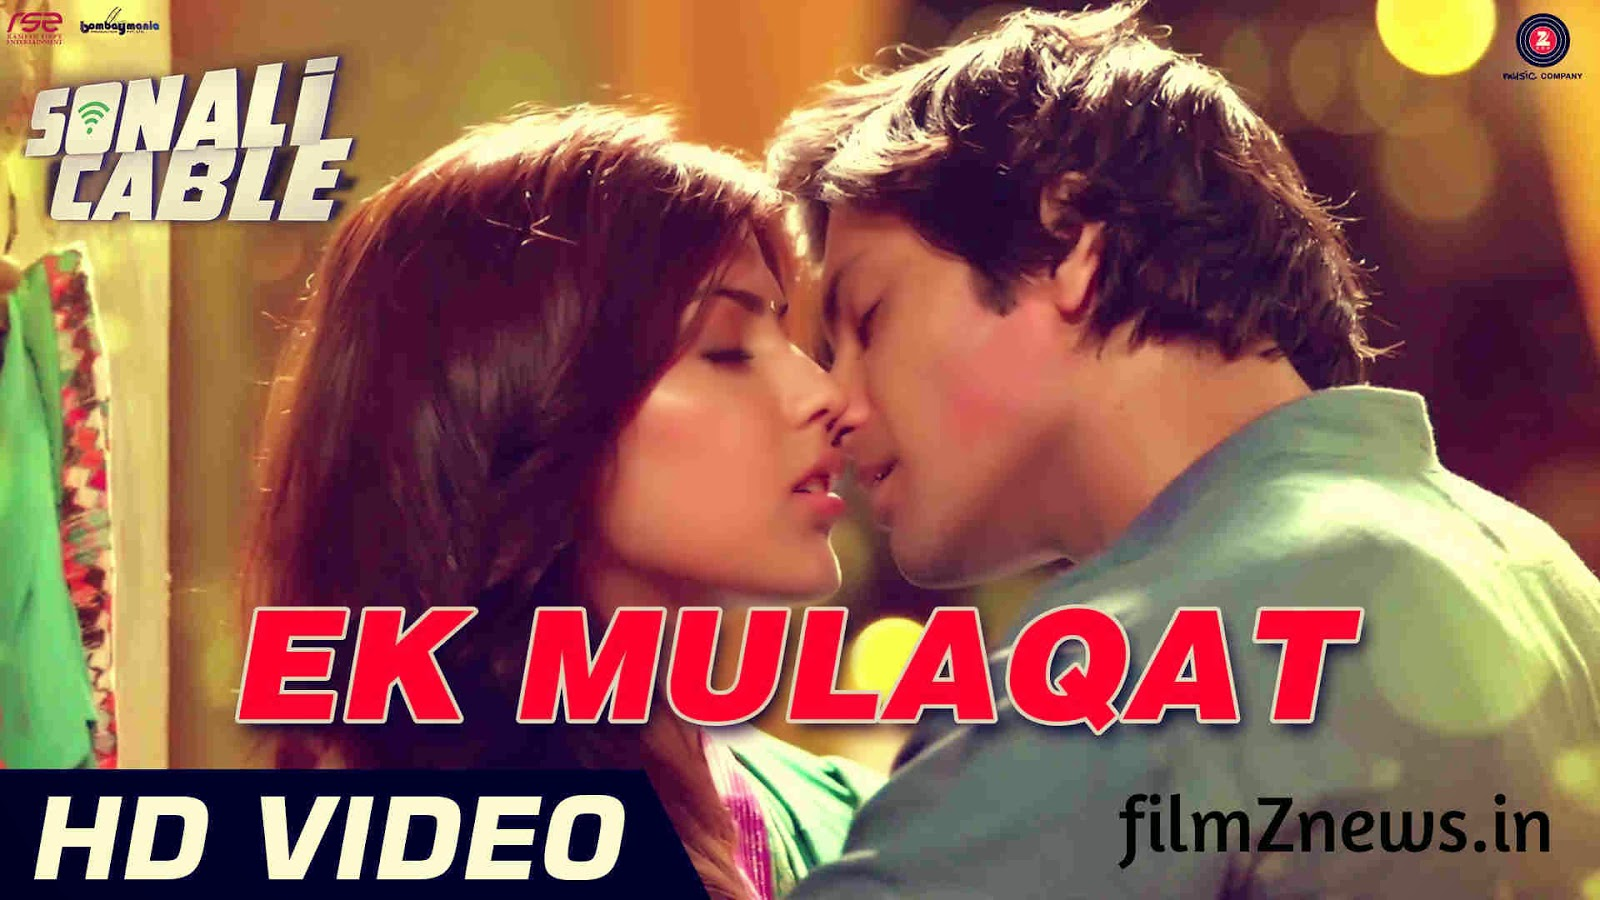 Ek Mulaqat video from Sonali Cable (2014) - Ali Fazal & Rhea Chakraborty